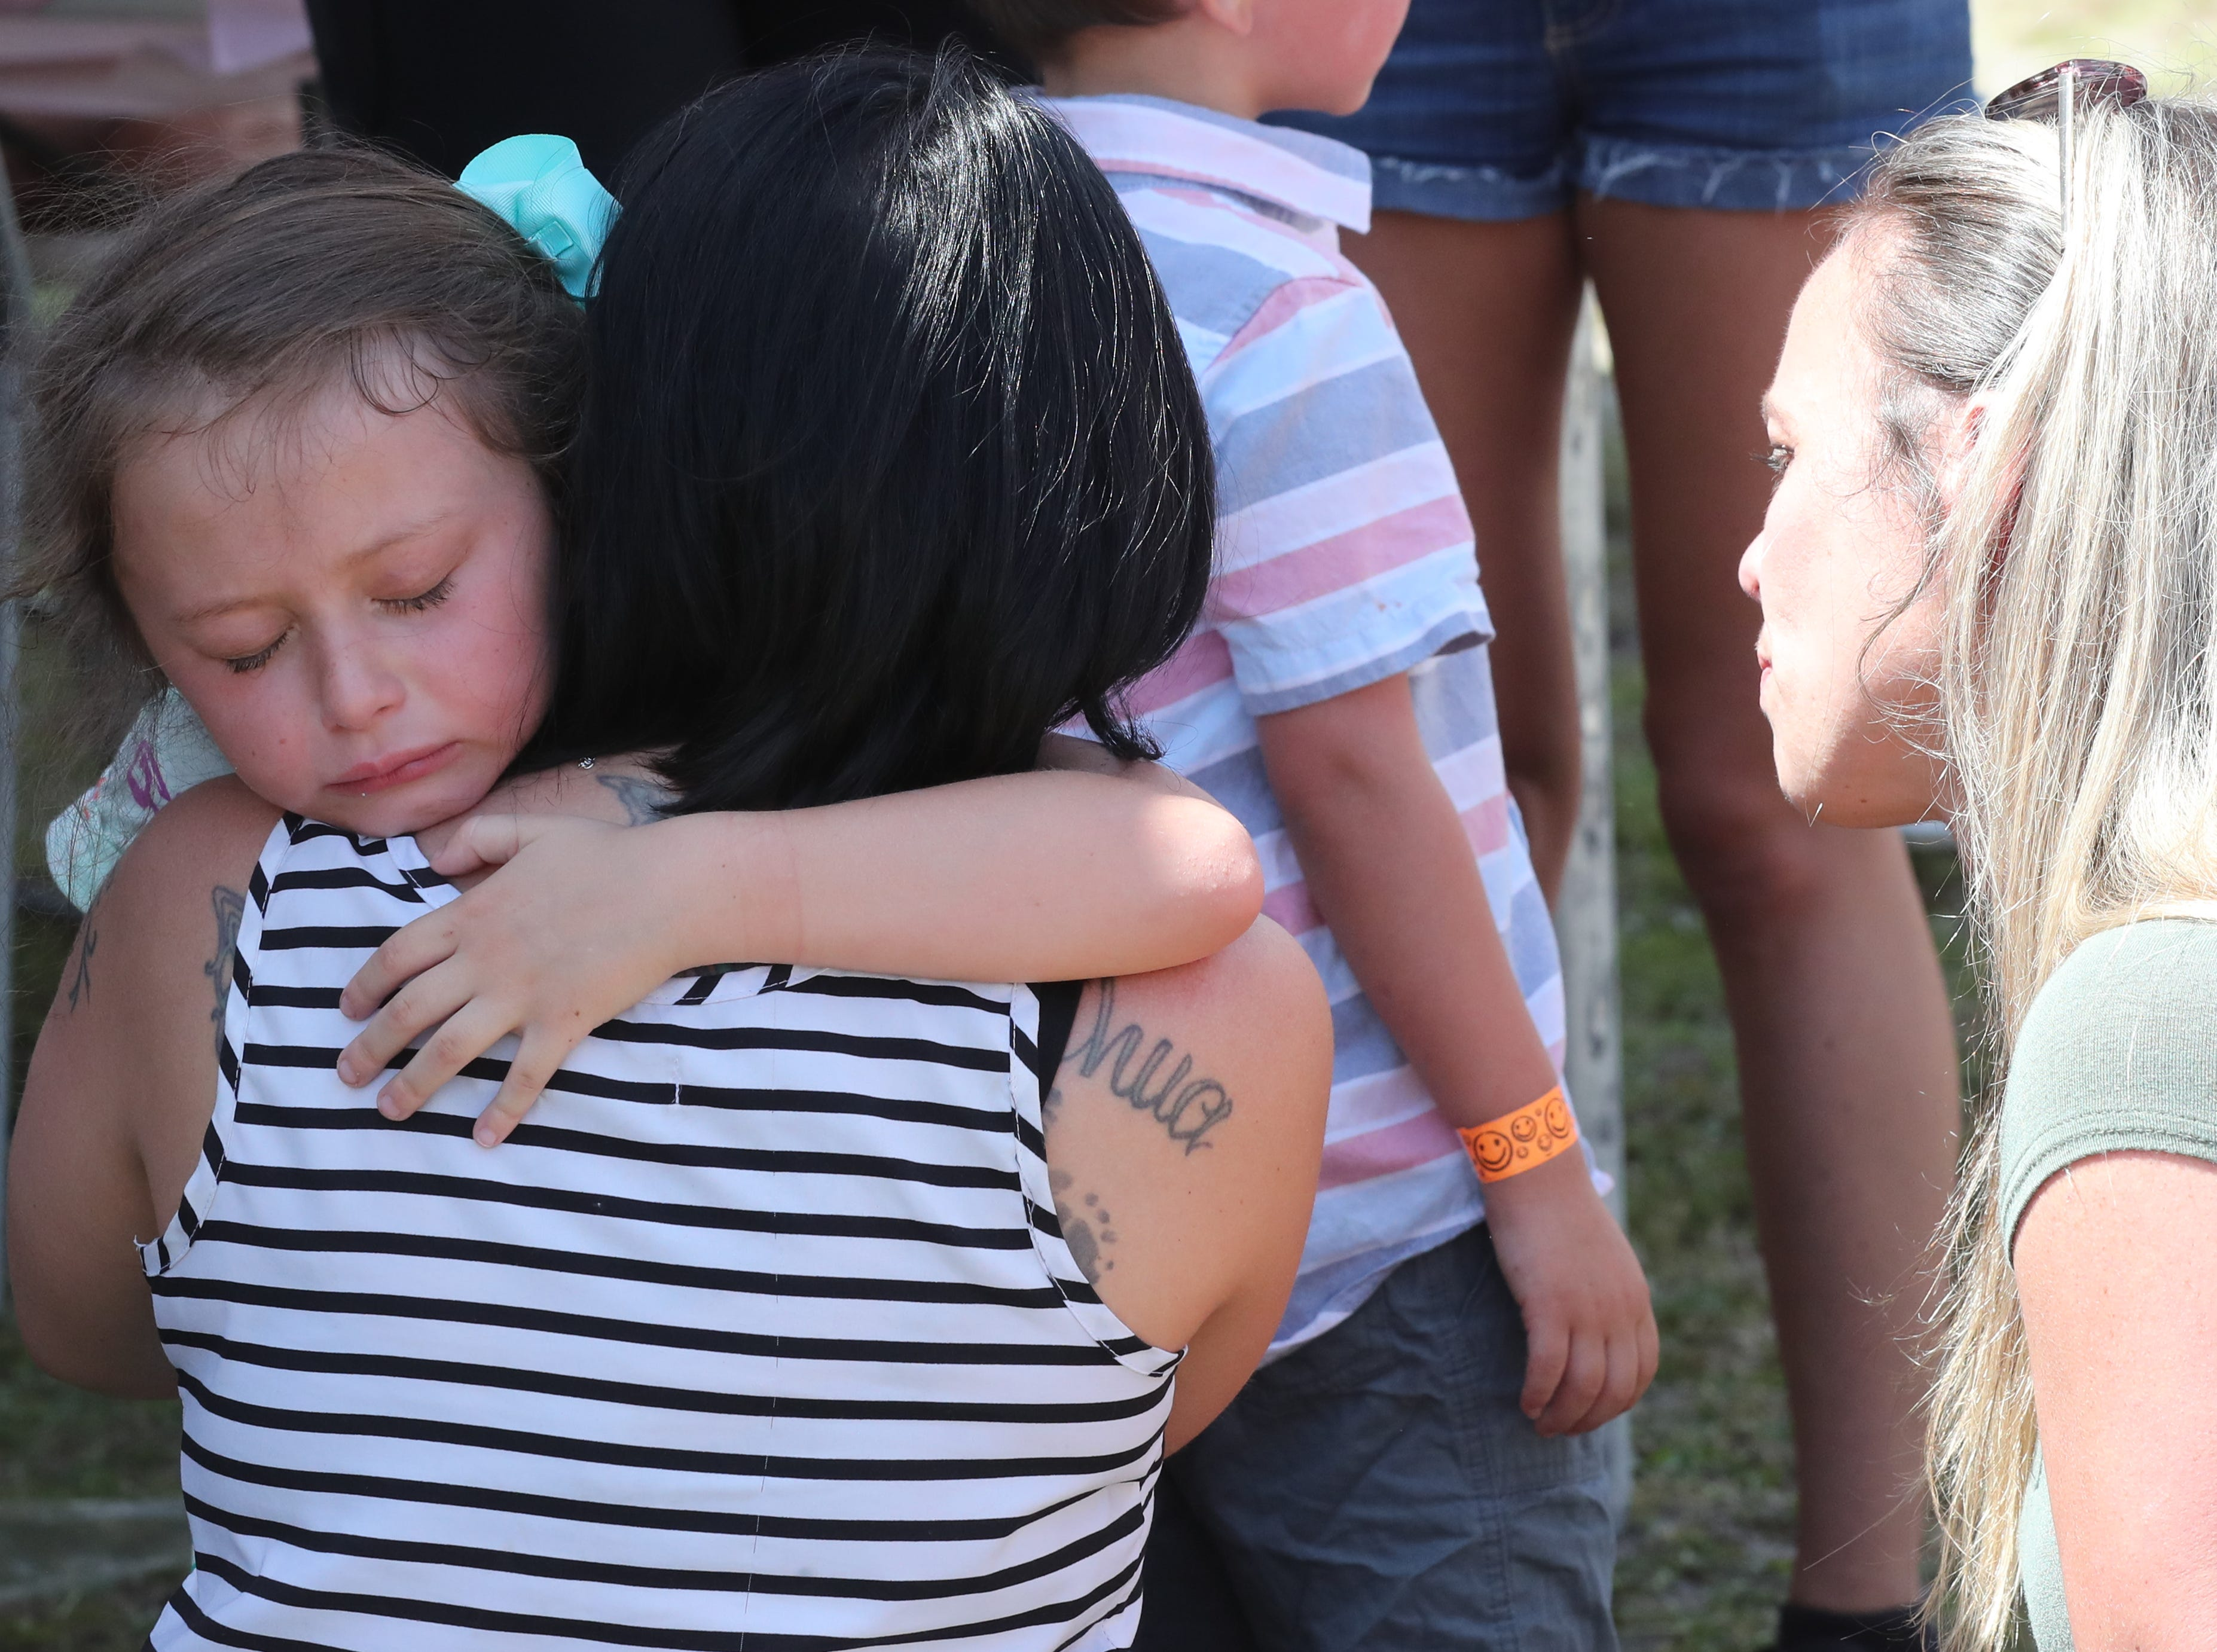 Cheyanne Begle, 7 of Cape Coral and classmate of Layla, hugs Kathleen Aiken, Layla's mom at the event Saturday. Lights for Layla fundraiser. Cheyanne's mom, Samantha Belge looks on.  Lee County students who wait for school buses in the dark morning hours will be able to adorn their backpacks with flashing LED lights starting next year. Local agencies are partnering to raise money for the new safety protocols after the death of 8-year-old Layla Aiken, who was hit by a pickup truck while waiting at her bus stop with her brothers. Layla's family and friends hosted their own fundraiser called Lights for Layla Saturday from 1-3 p.m. at the Cape Assembly church, Cape Coral.